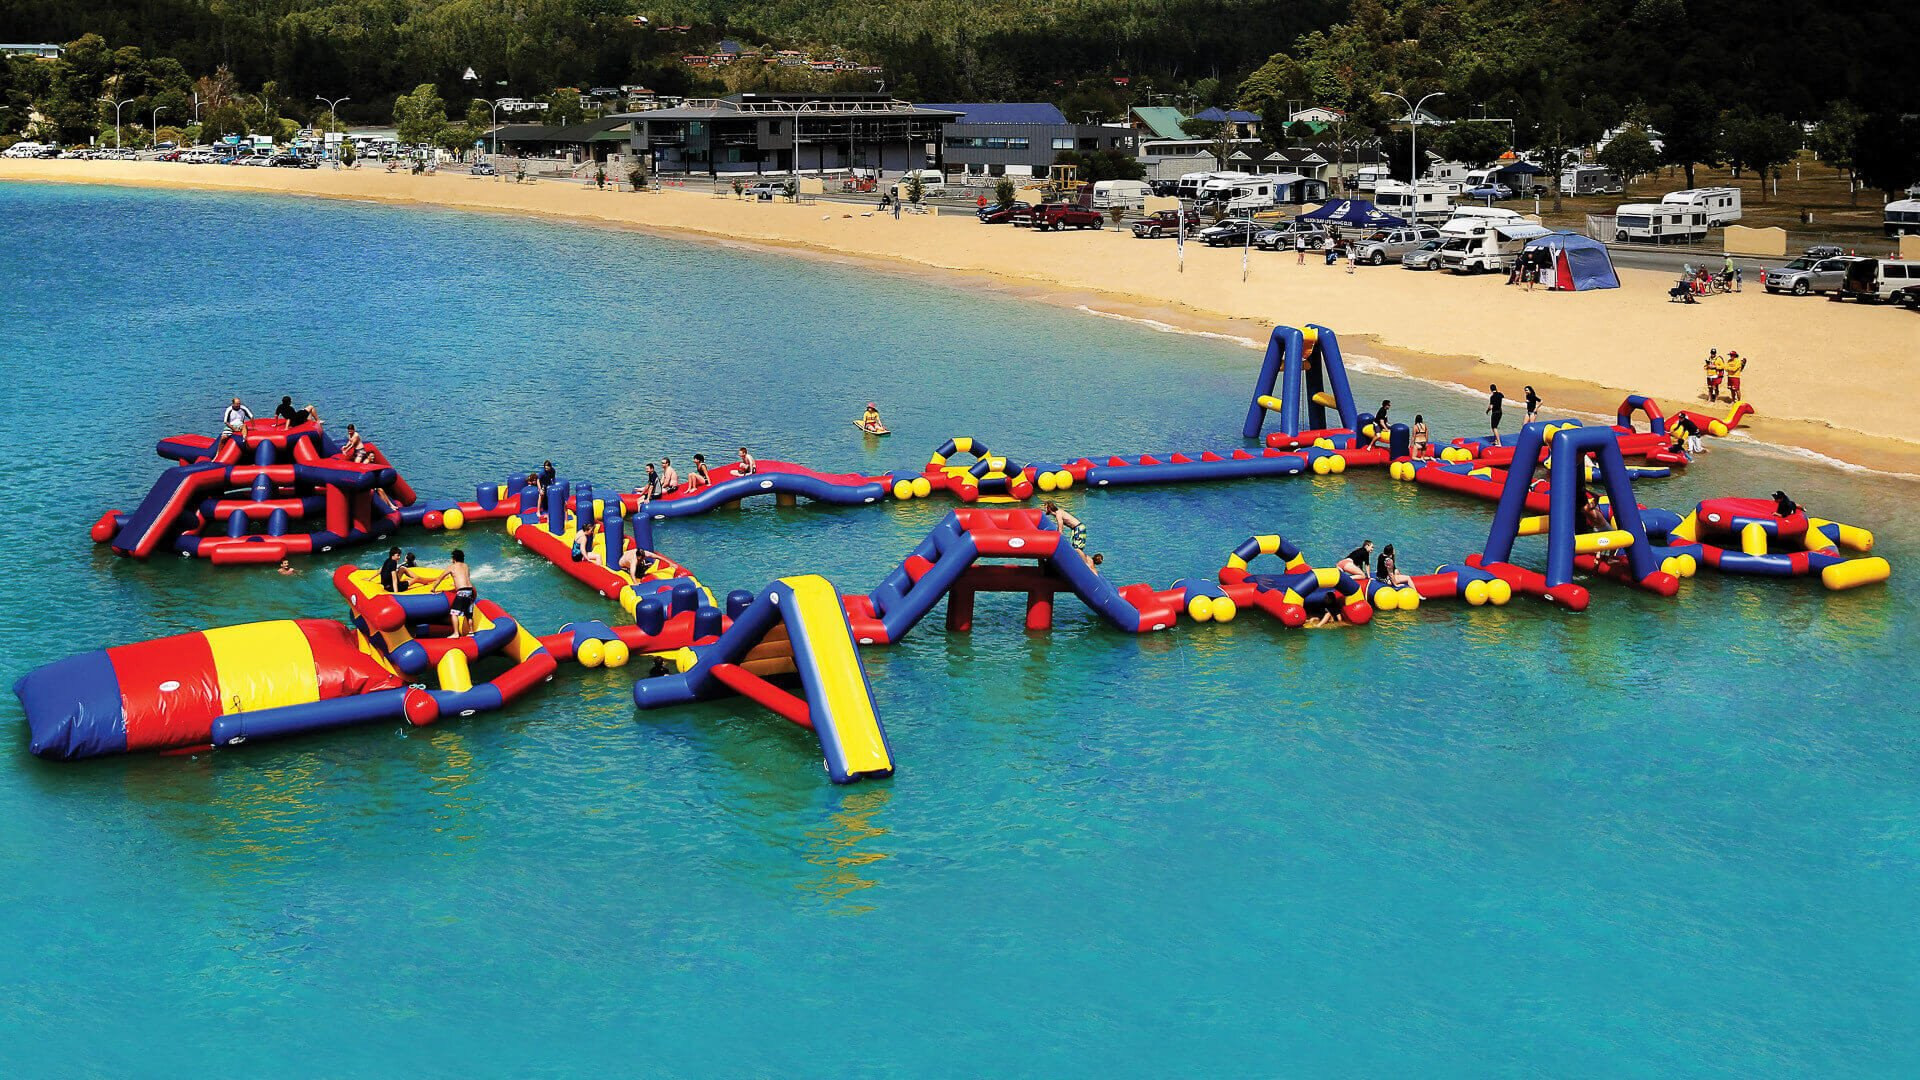 Factory Directly Large Inflatable Floating Water Park, Commerical Inflatable Aqua Water Park For Summer Events